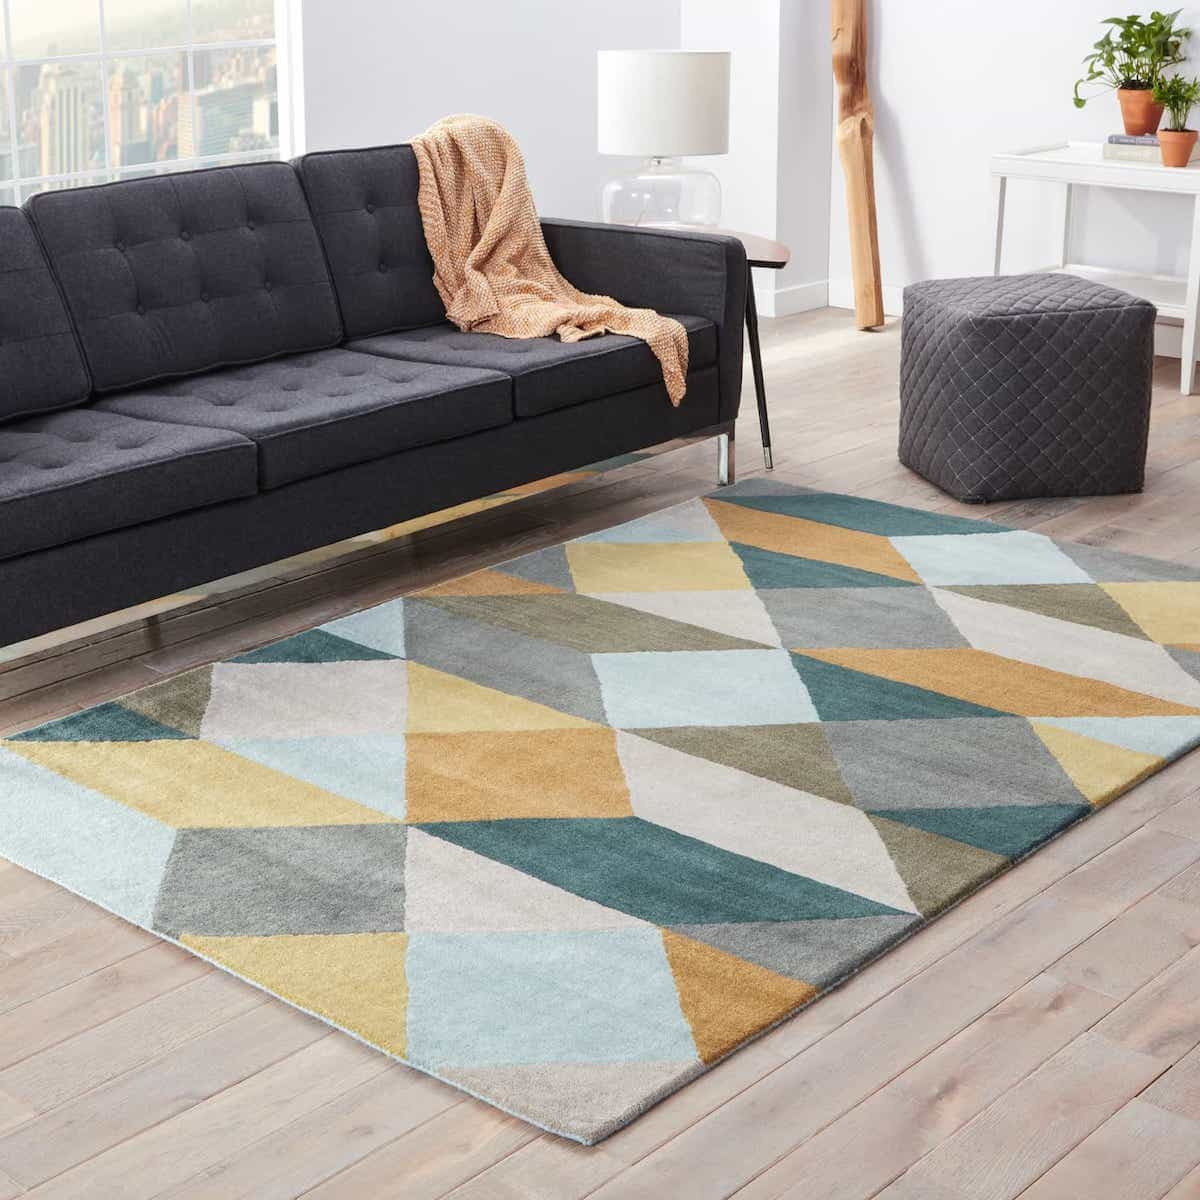 Cozy Yellow & Gray Geometric Wool Hand Tufted Area Rug For Modern Living Room With Contemporary Sofa And Chairs (Image 5 of 15)